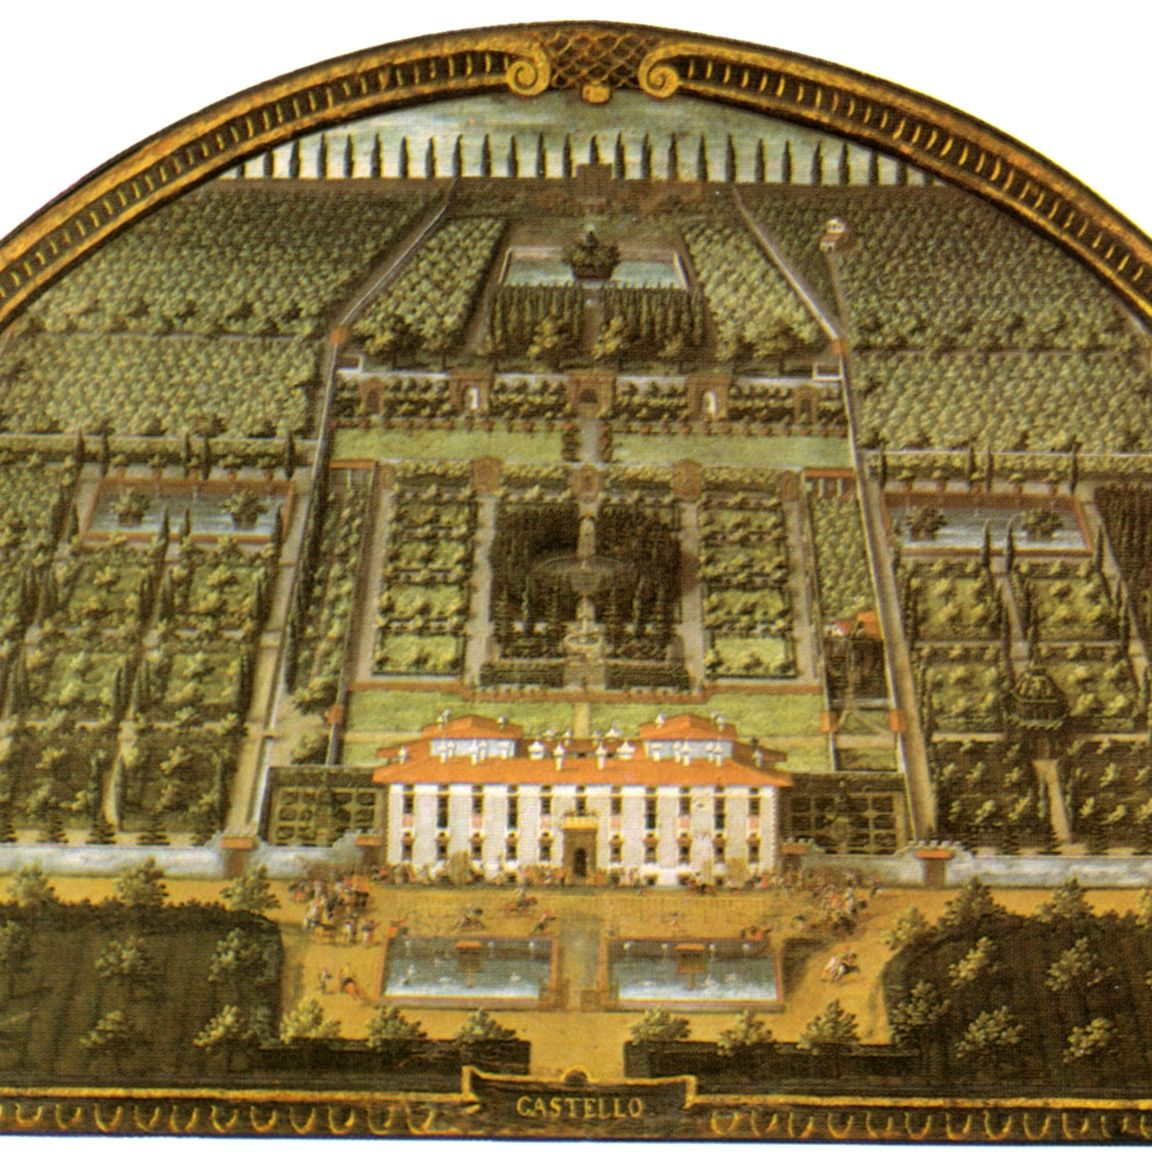 Lunette of Villa di Castello (as it appeared in 1599)